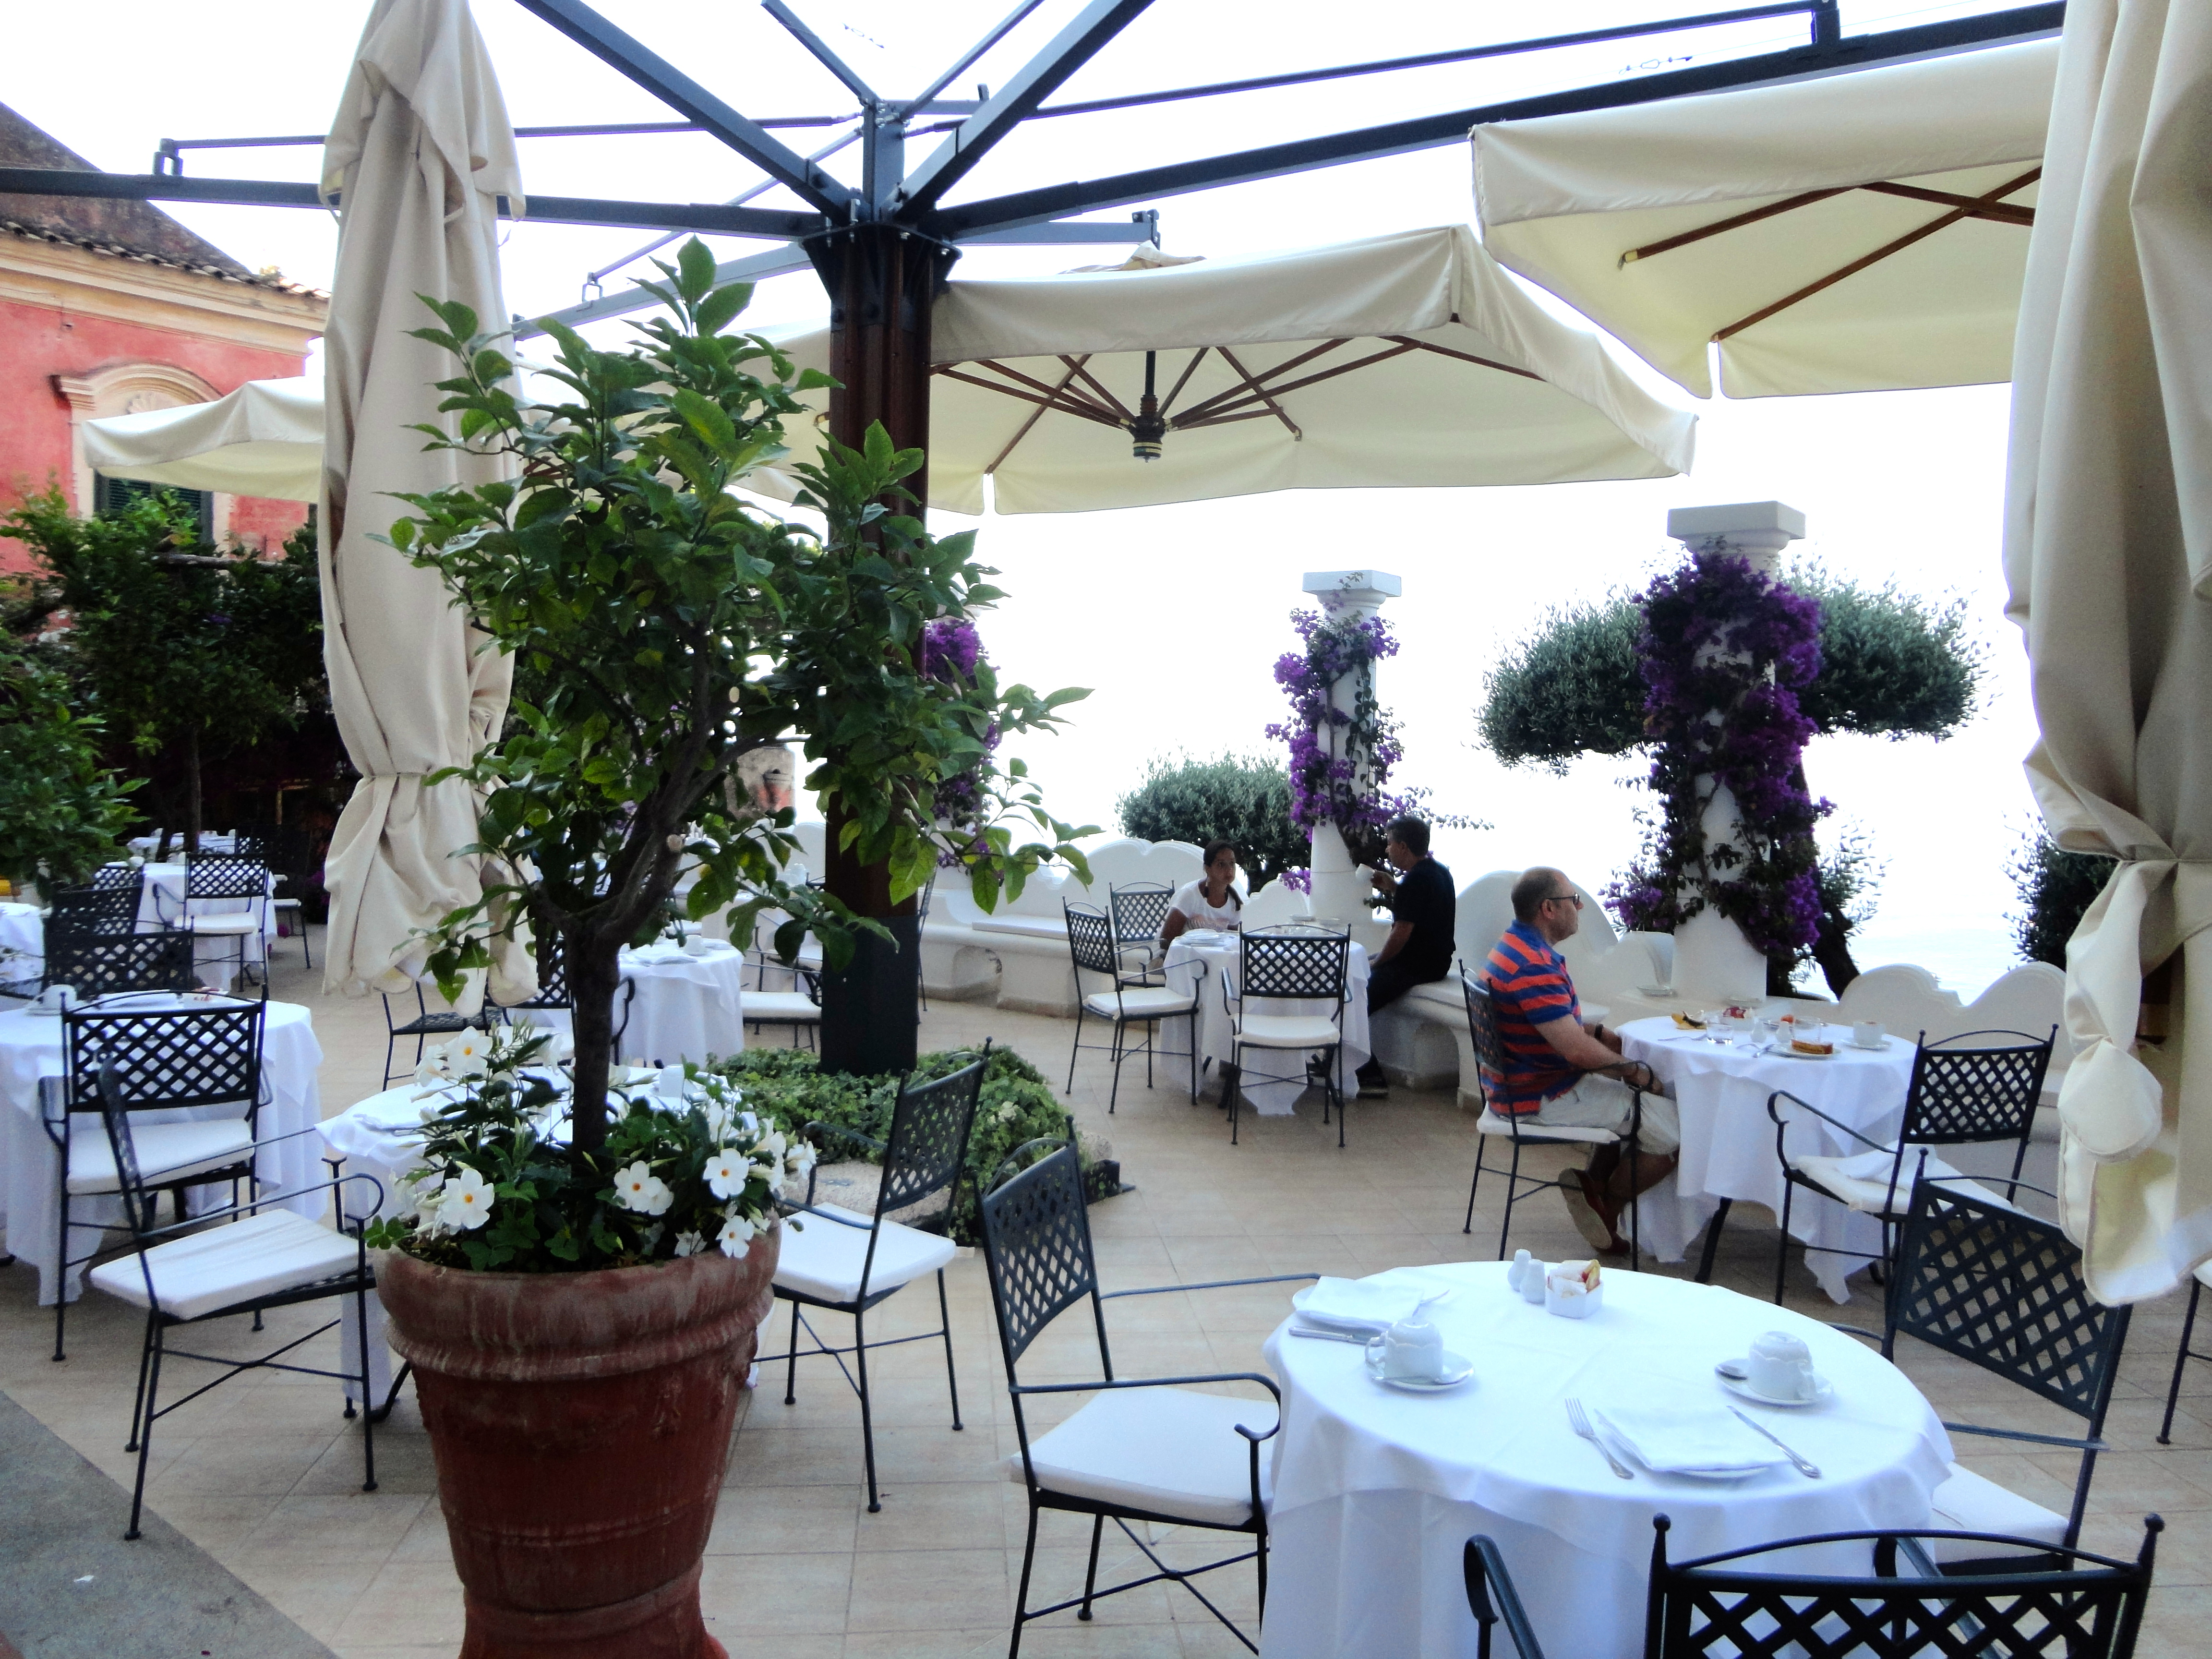 Image gallery outdoor dining positano italy for Breakfast terrace